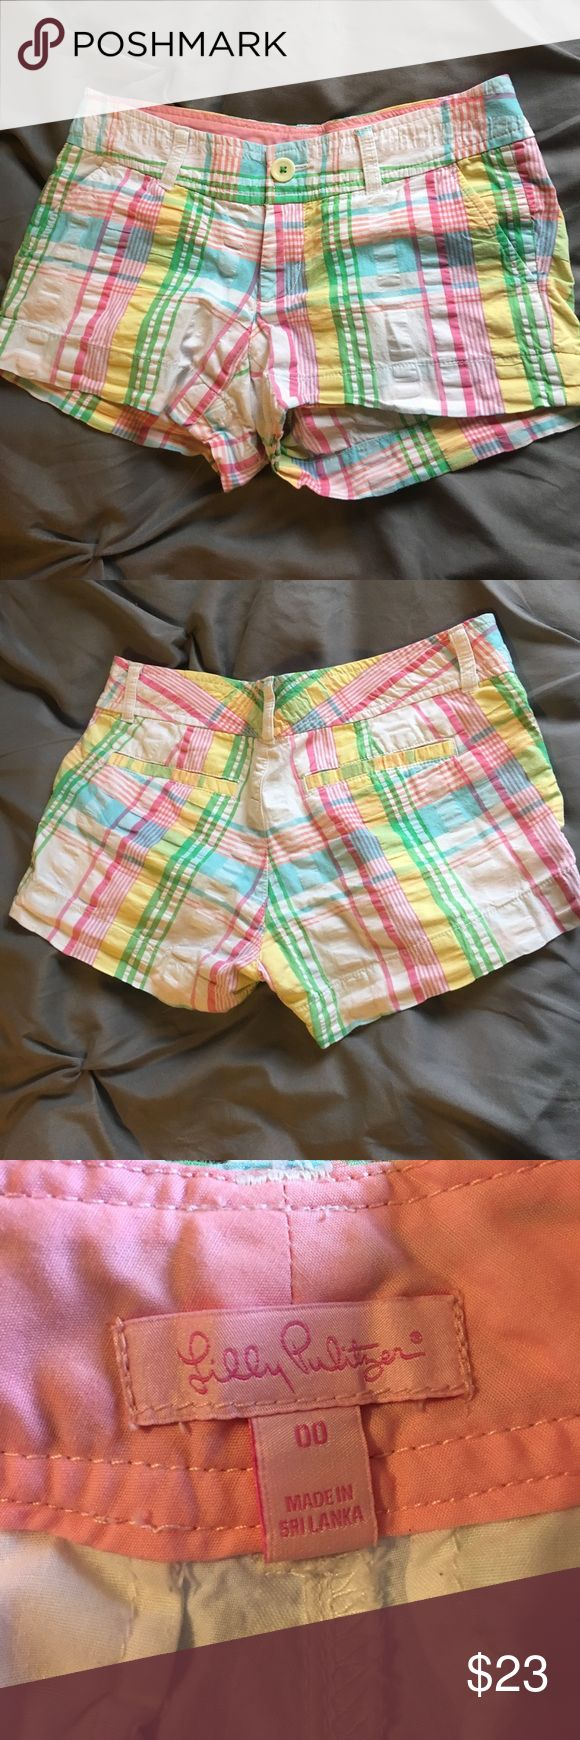 Spring Plaid Lilly Pulitzer 00 Shorts Adorable spring colors Plaid shorts by Lilly Pulitzer! Worn and washed on only a couple of occasions and are still in great condition! Tag Size:  00 Brand: Lilly Pulitzer Feel free to ask any questions or make offers! I love building discounted bundles and usually ship same or next business day! #askanyquestions #makeanoffer #bundleandsave #mydressformsnameisTallulah #lillypulitzershorts #lillyshorts Lilly Pulitzer Shorts